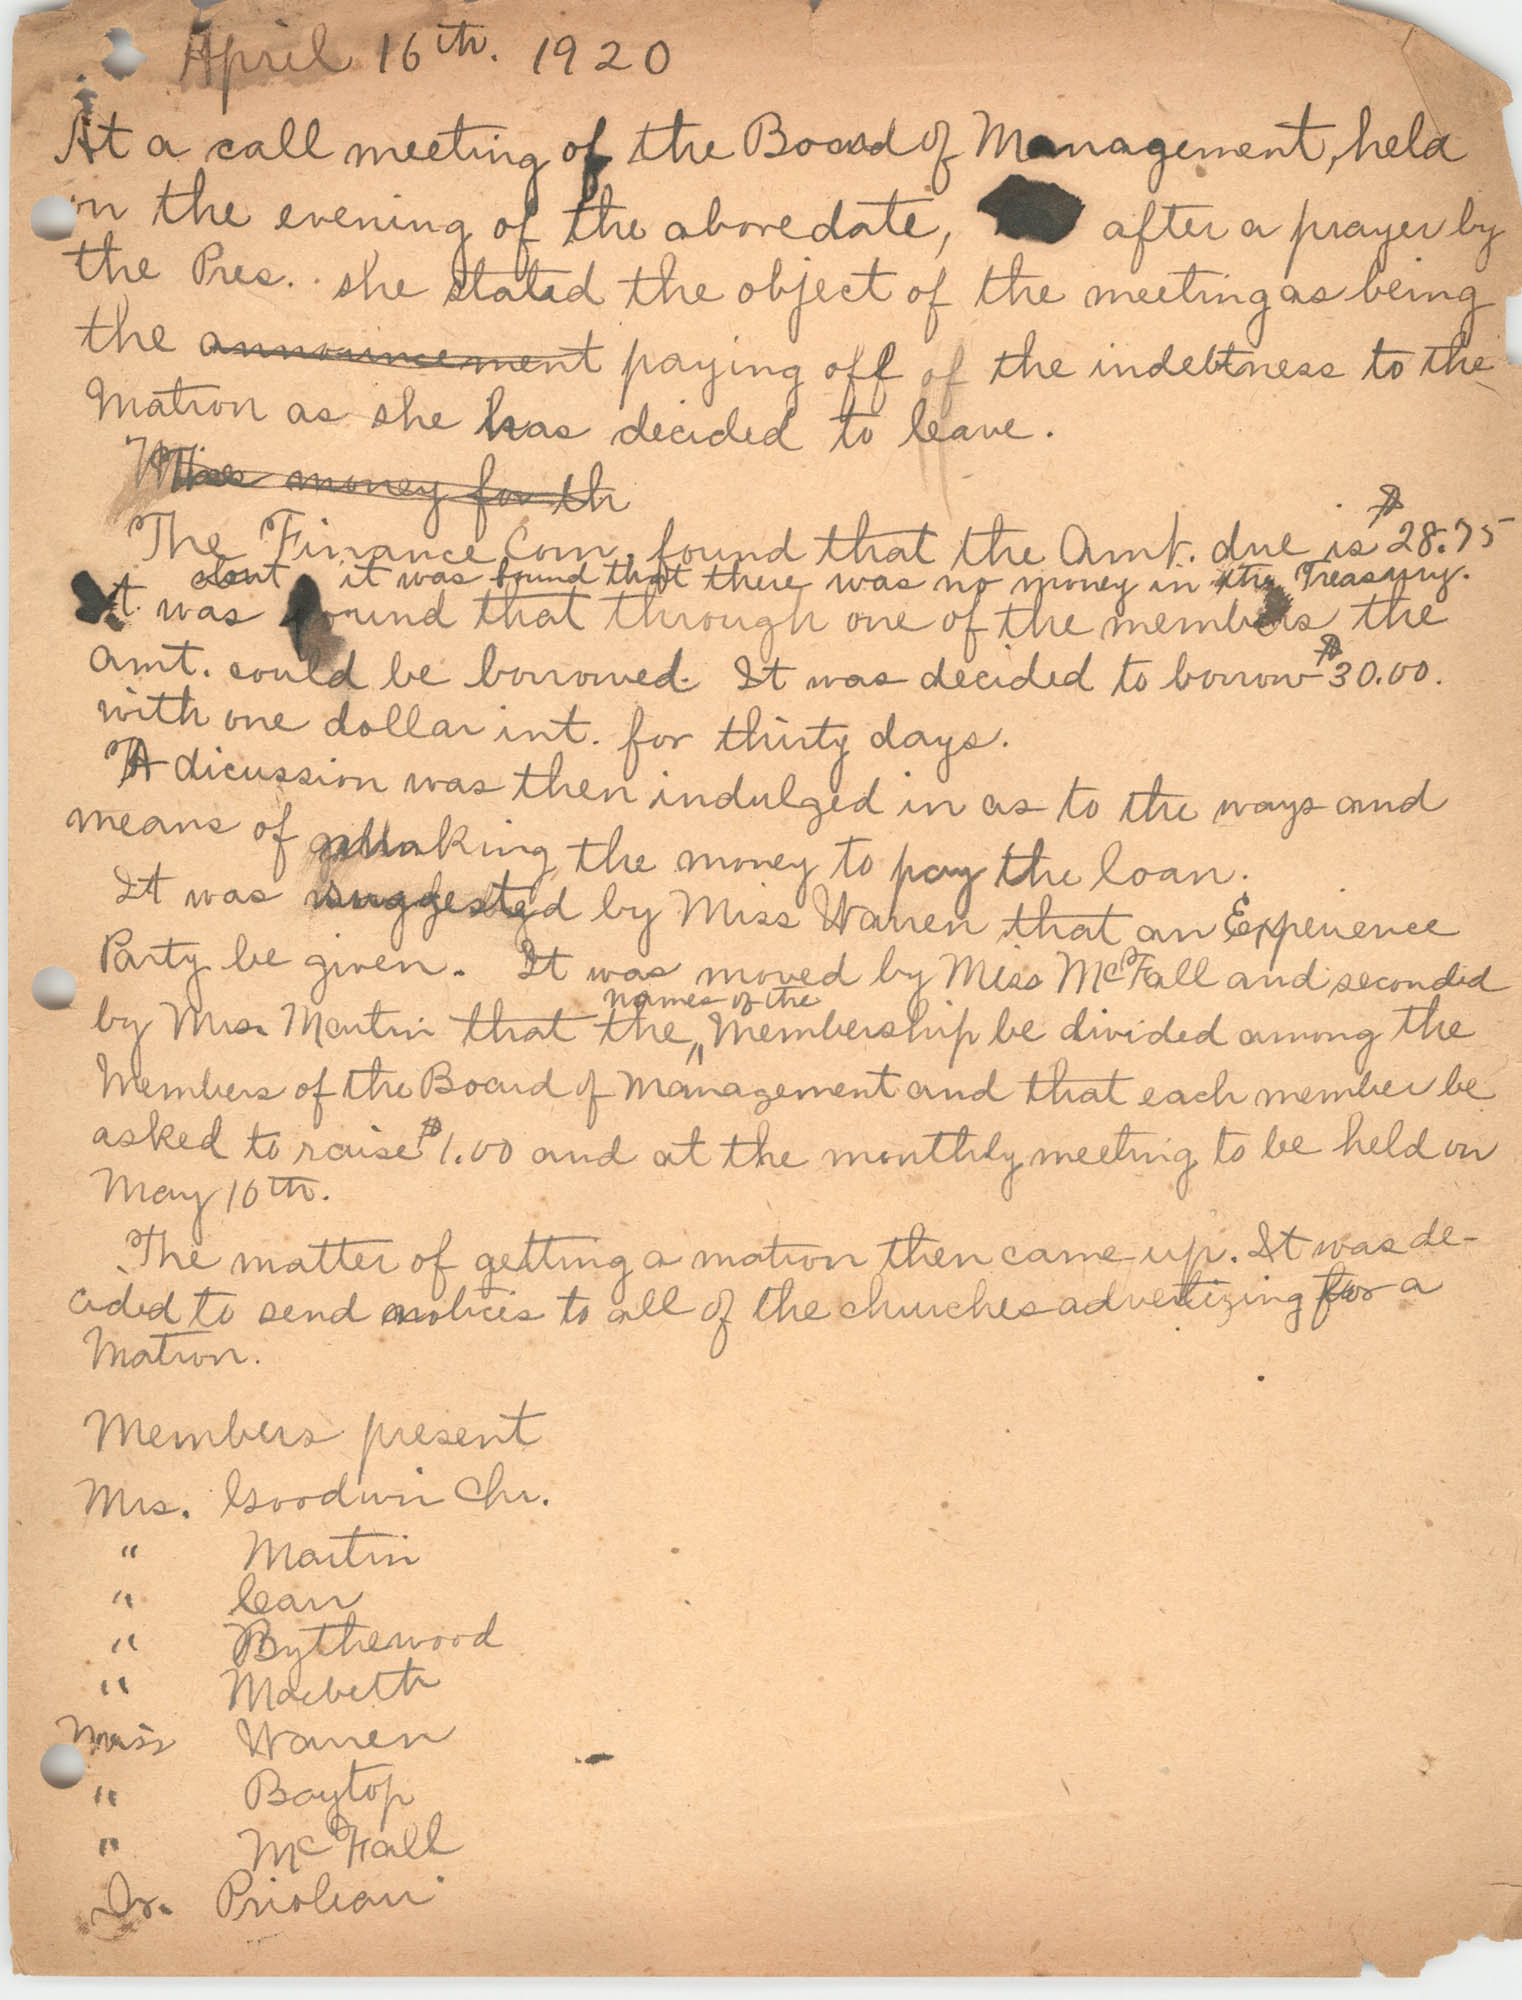 Minutes to the Board of Management, Coming Street Y.W.C.A., April 16, 1920